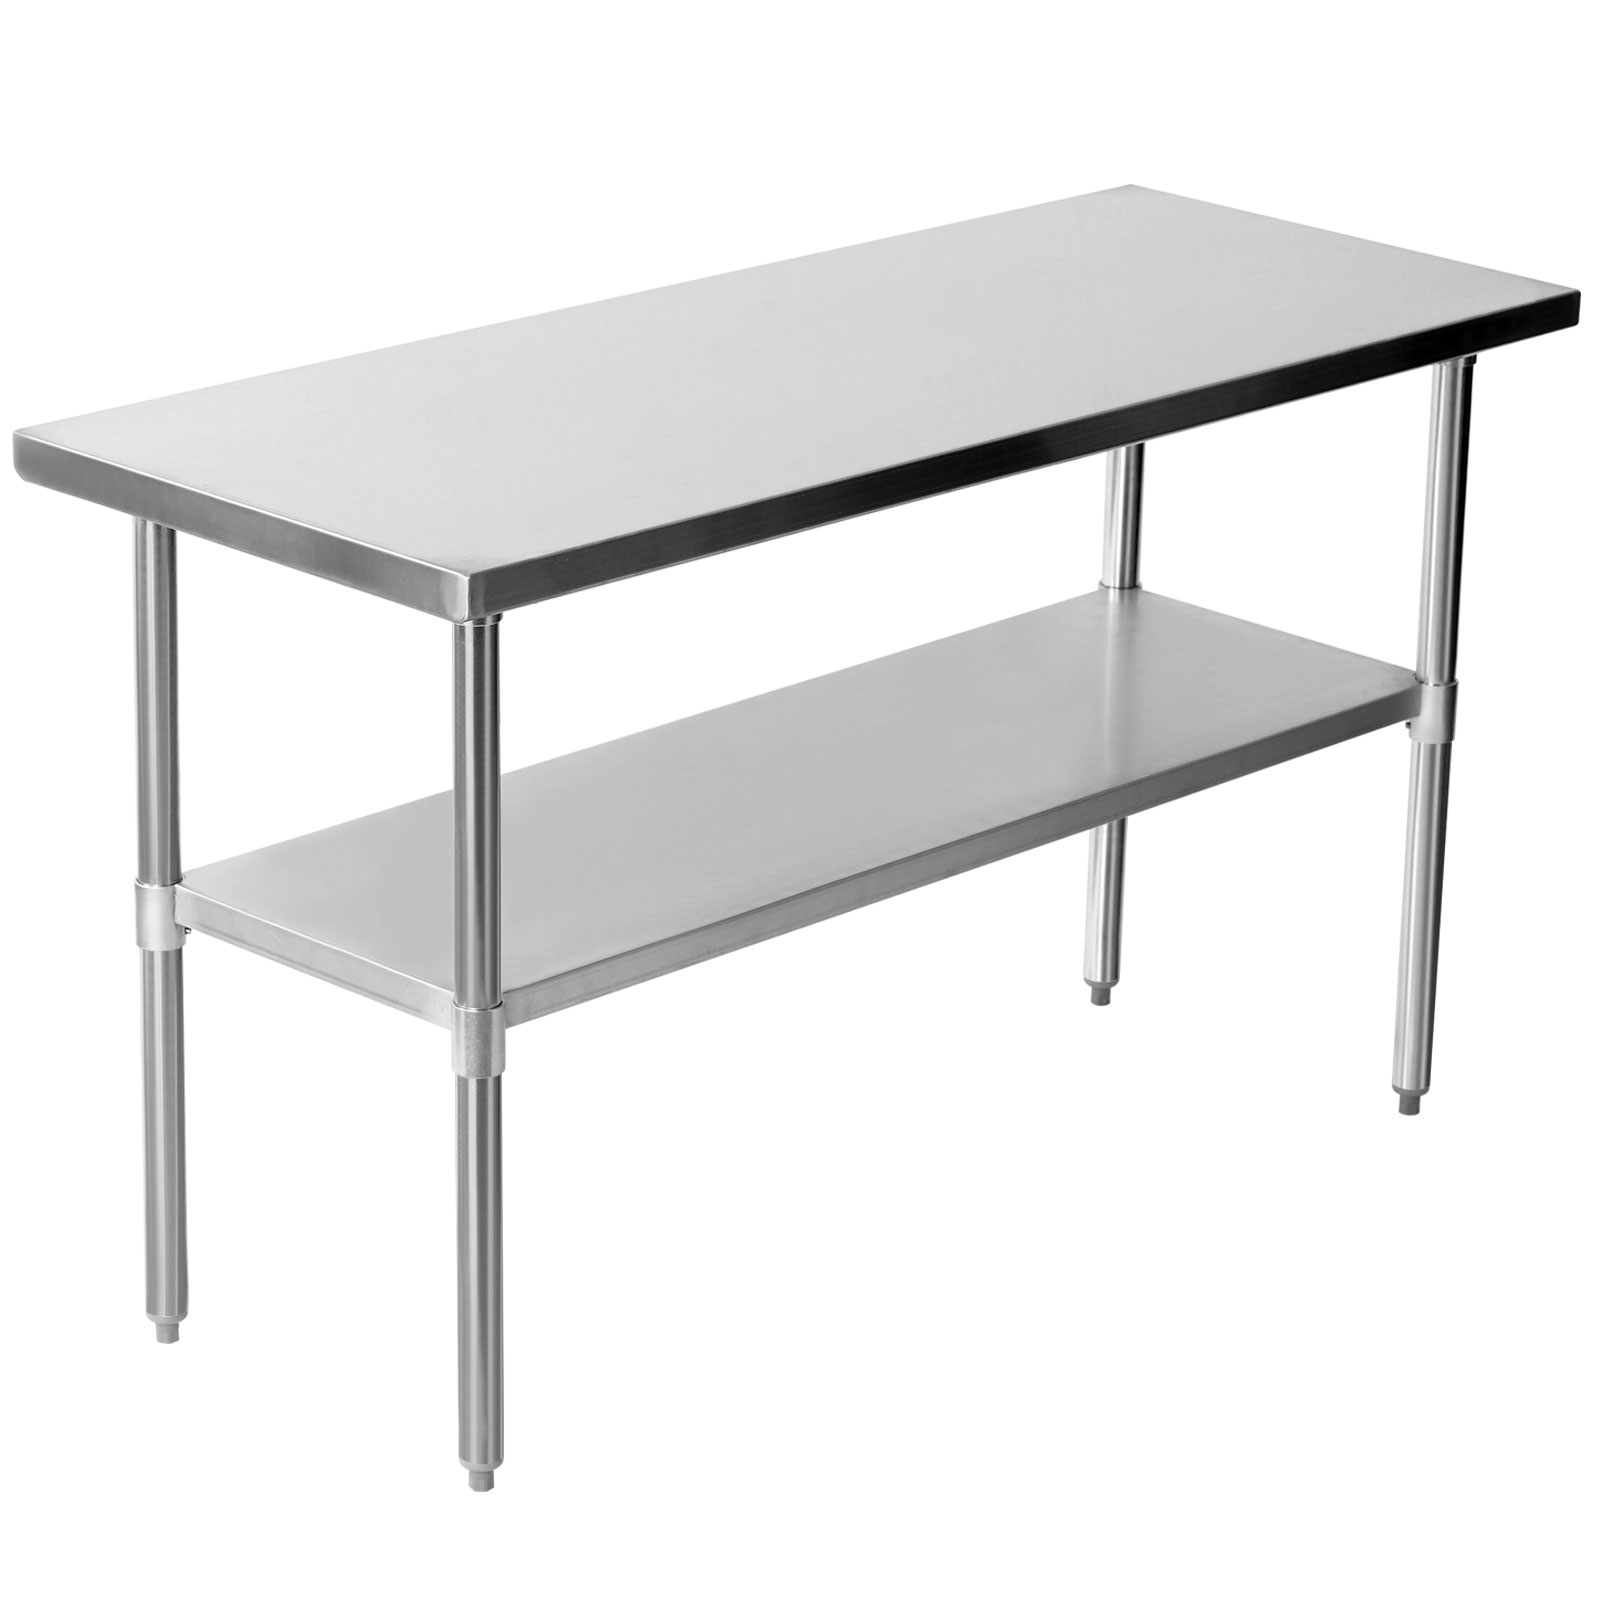 commercial stainless steel work bench kitchen catering. Black Bedroom Furniture Sets. Home Design Ideas